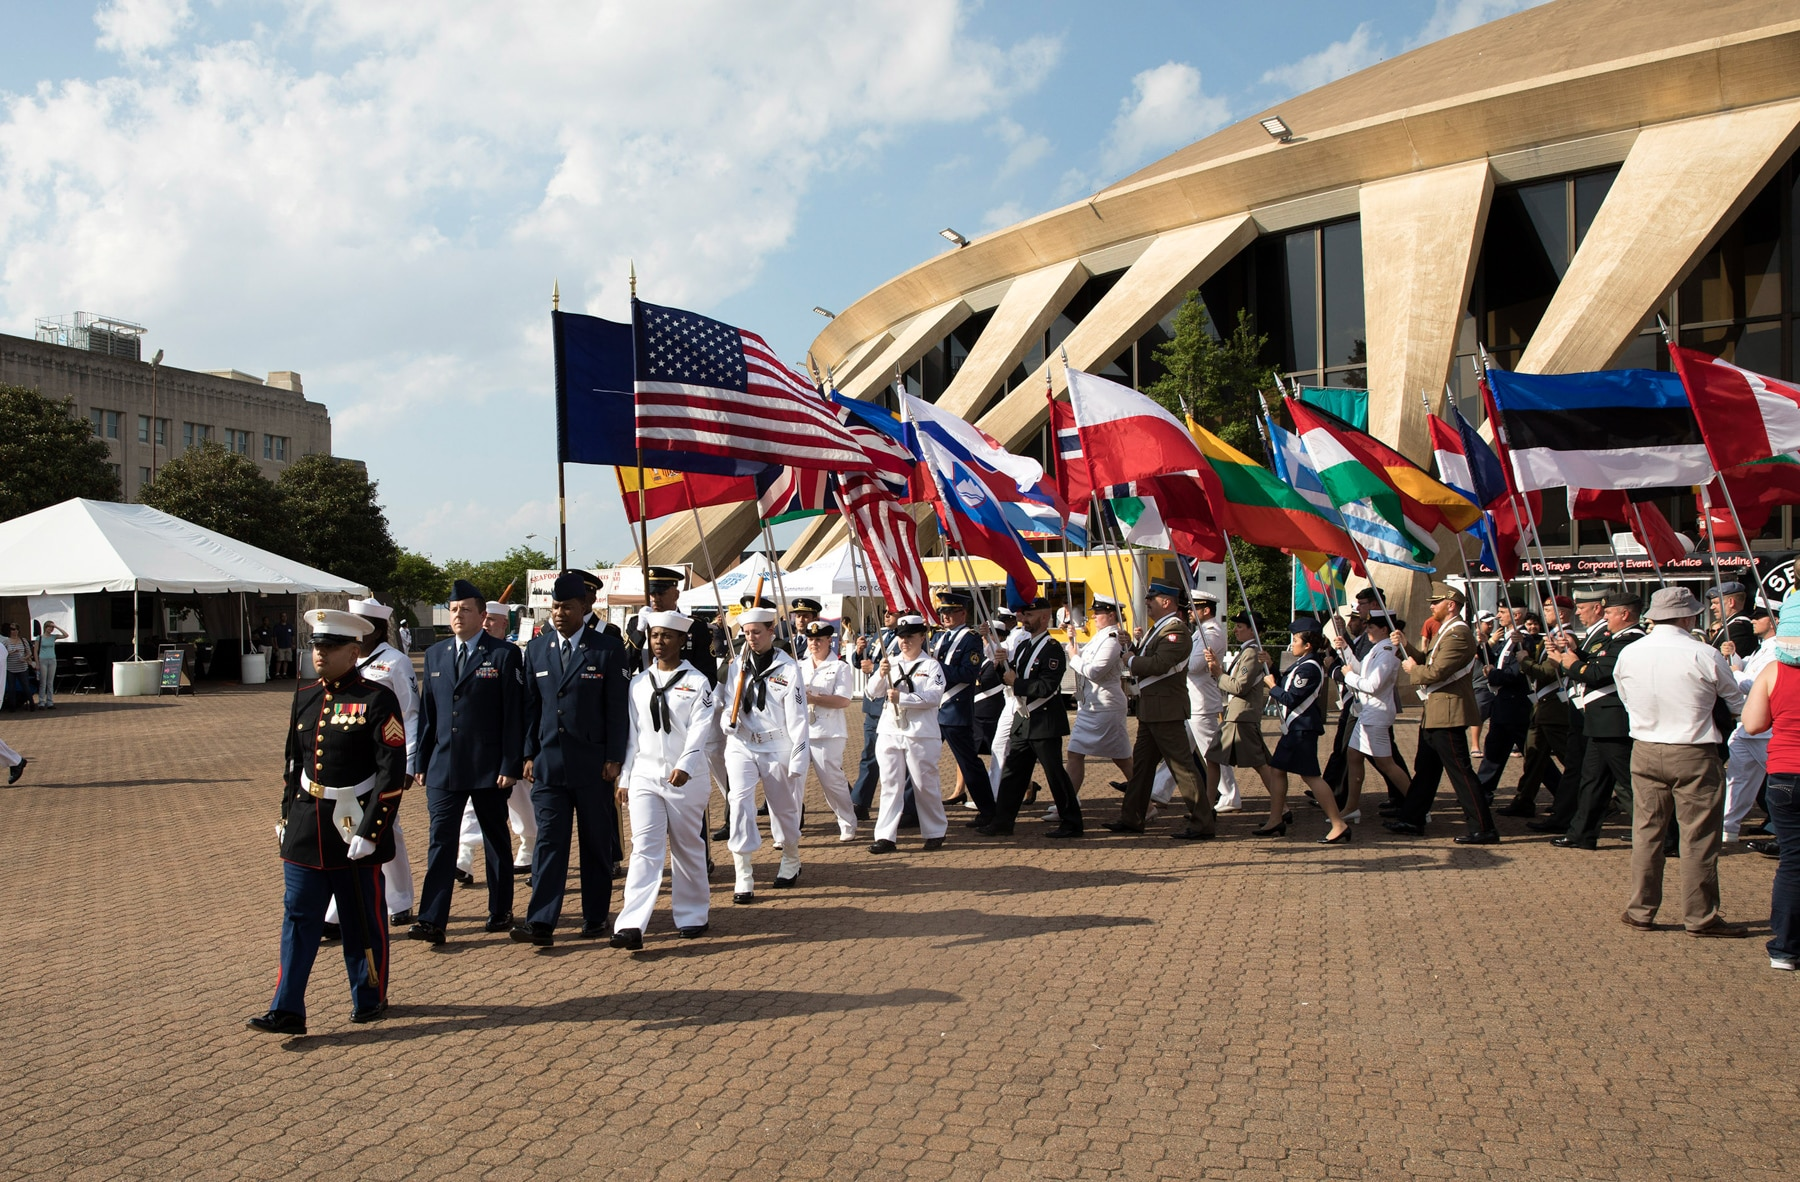 Military members marching in parade and carrying flags (U.S. Navy/Abraham Essenmacher)